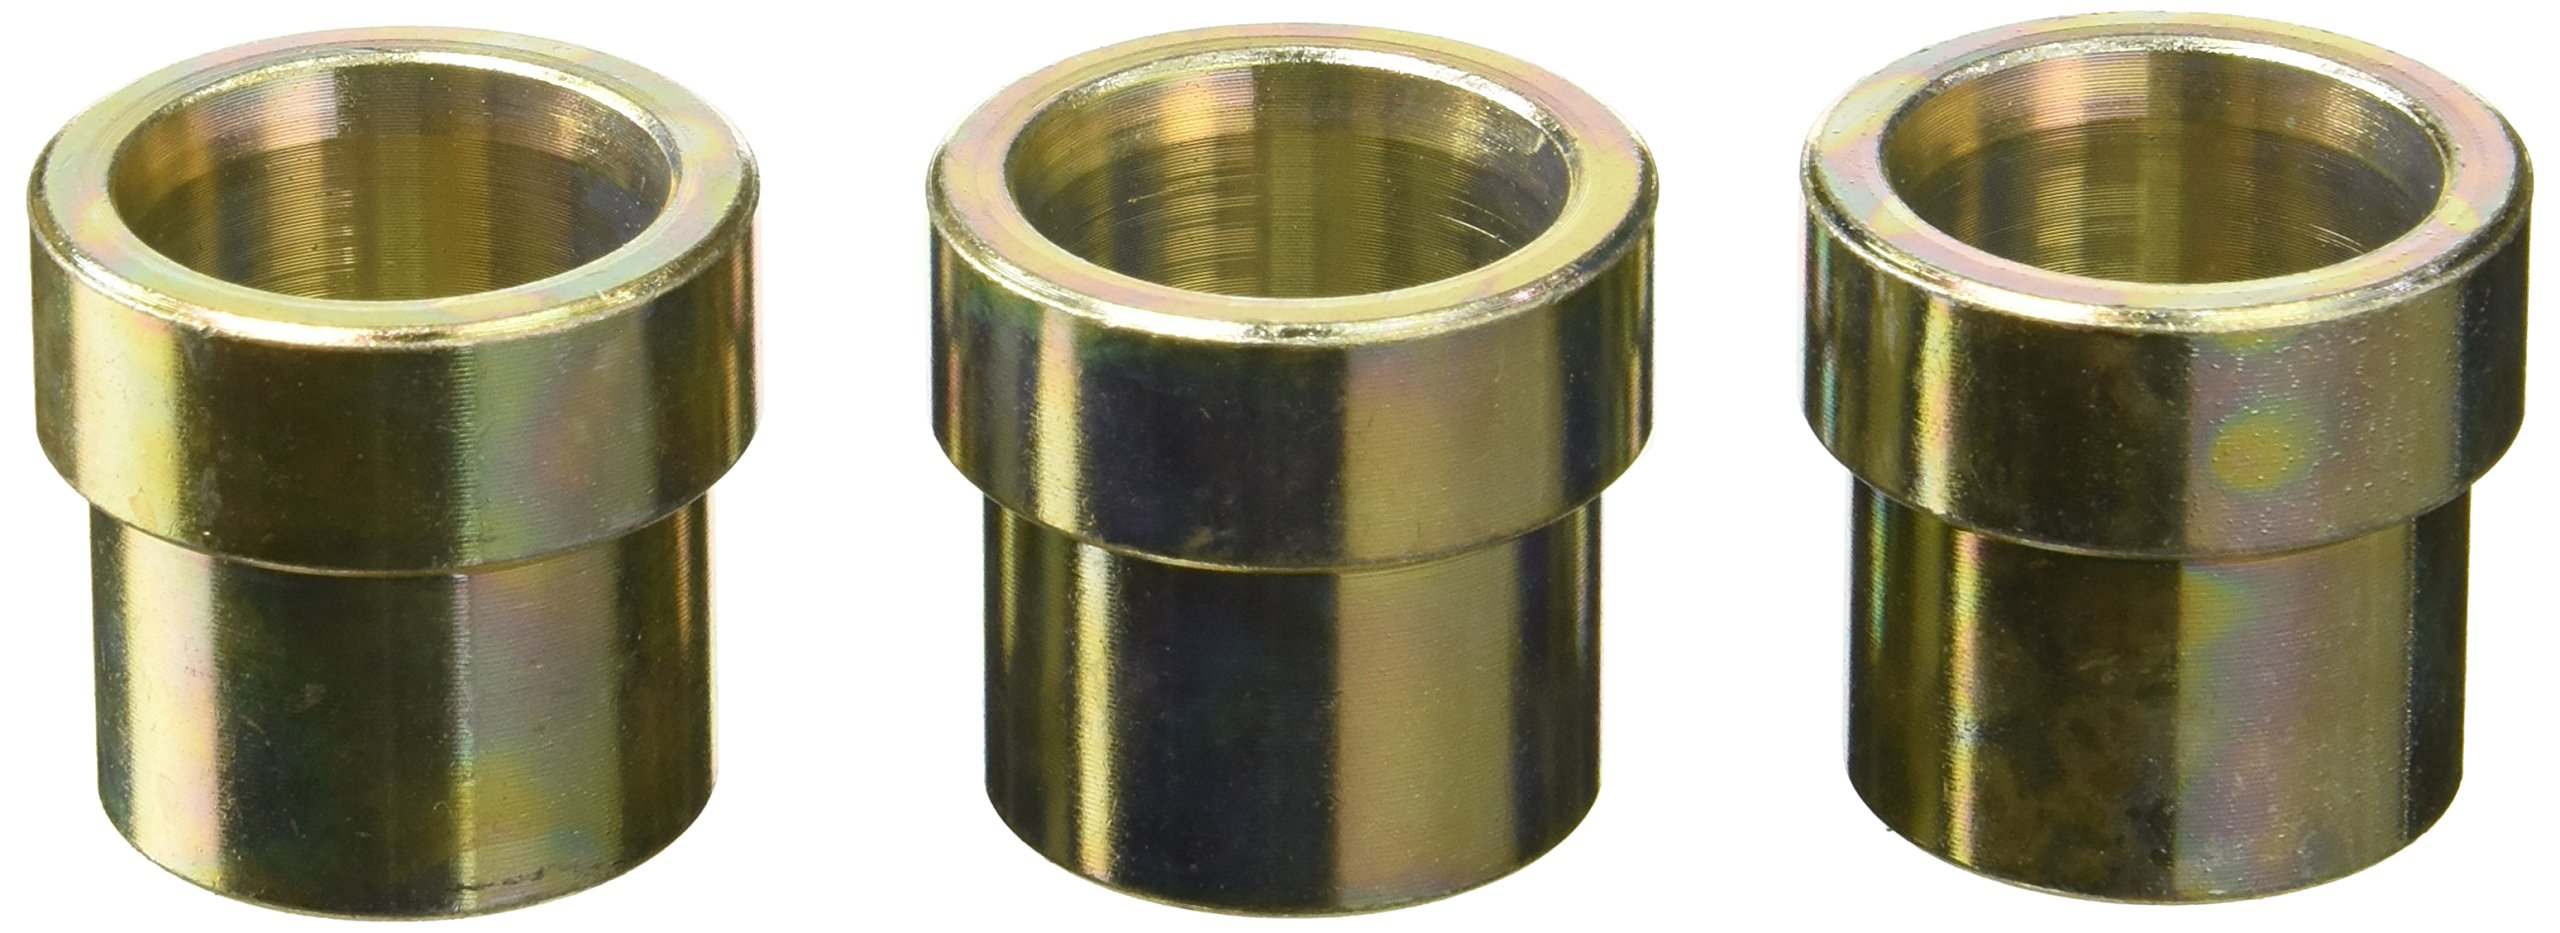 SPC Performance 32120 Wheel and Brake Drum Centering Sleeve, Pack of 6 by SPC Performance